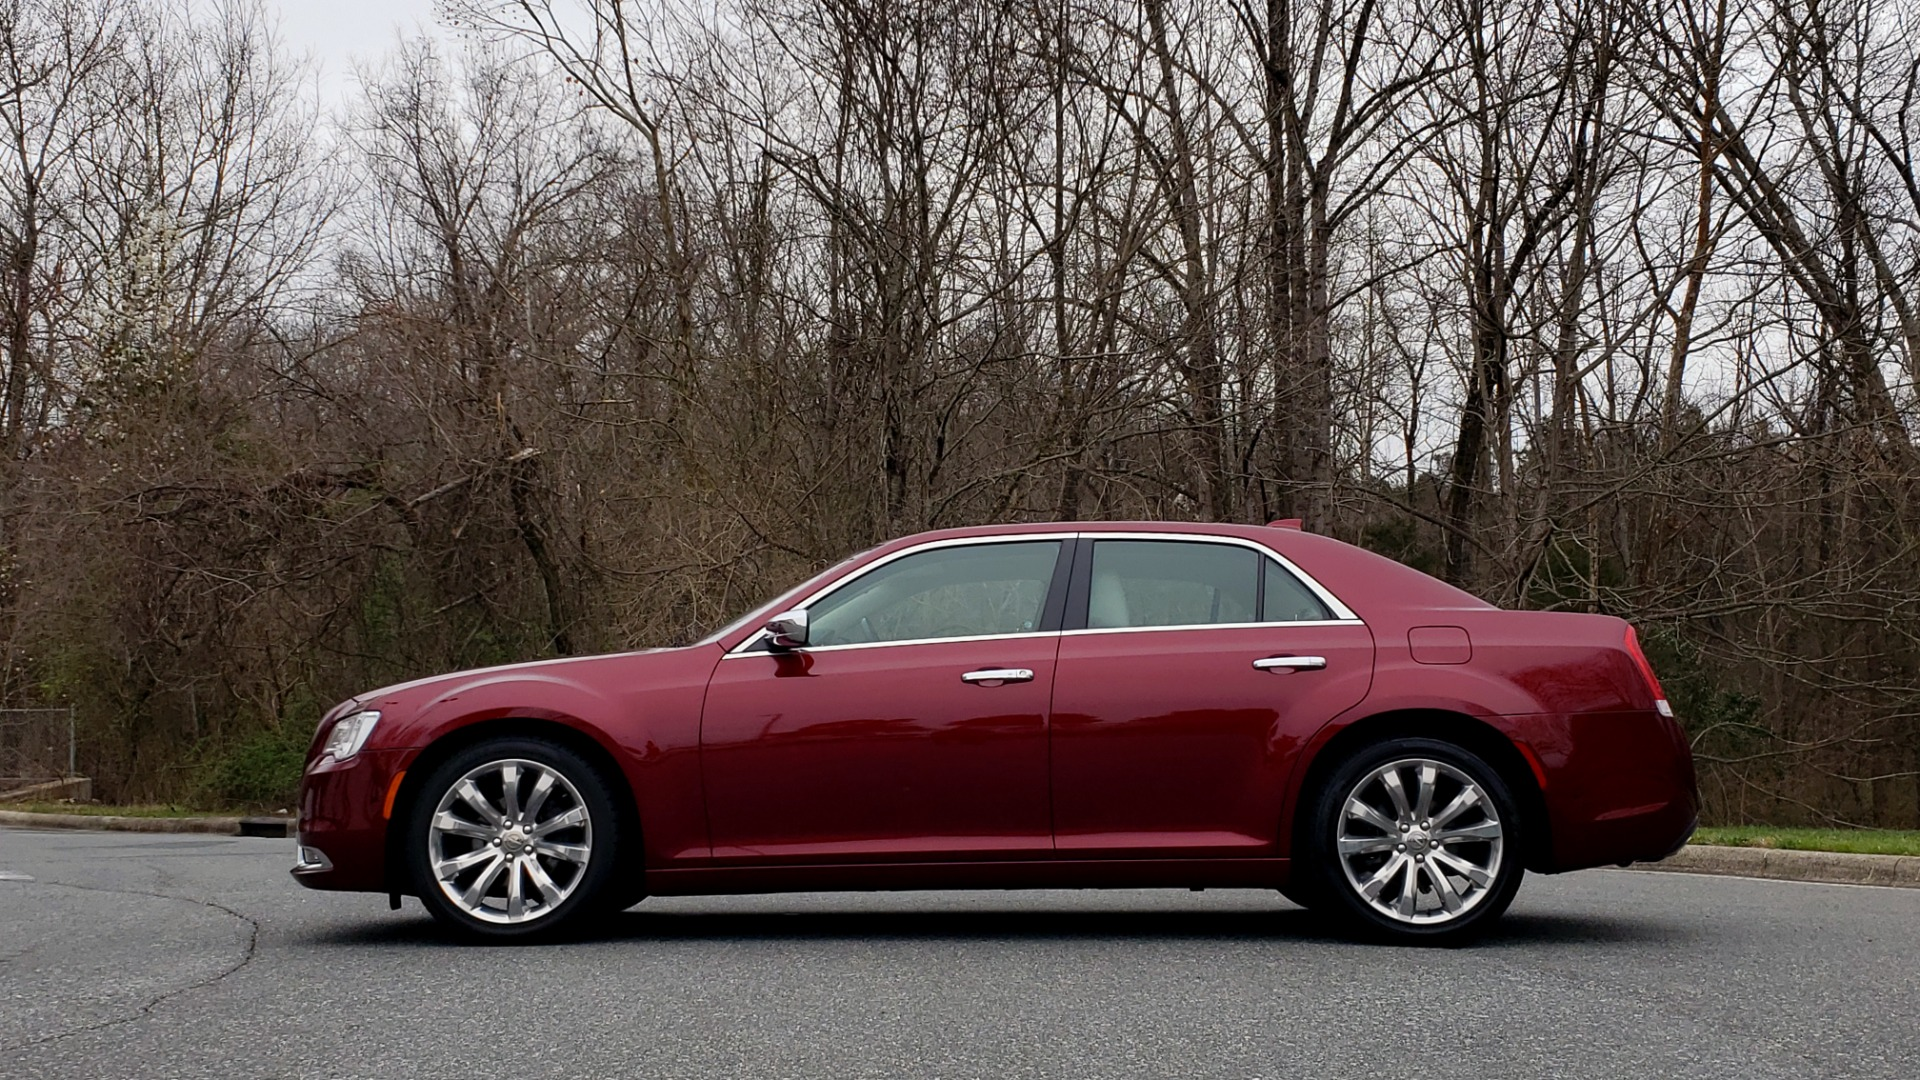 Used 2019 Chrysler 300 LIMITED / 3.6L V6 / 8-SPD AUTO / LEATHER / REARVIEW for sale Sold at Formula Imports in Charlotte NC 28227 3